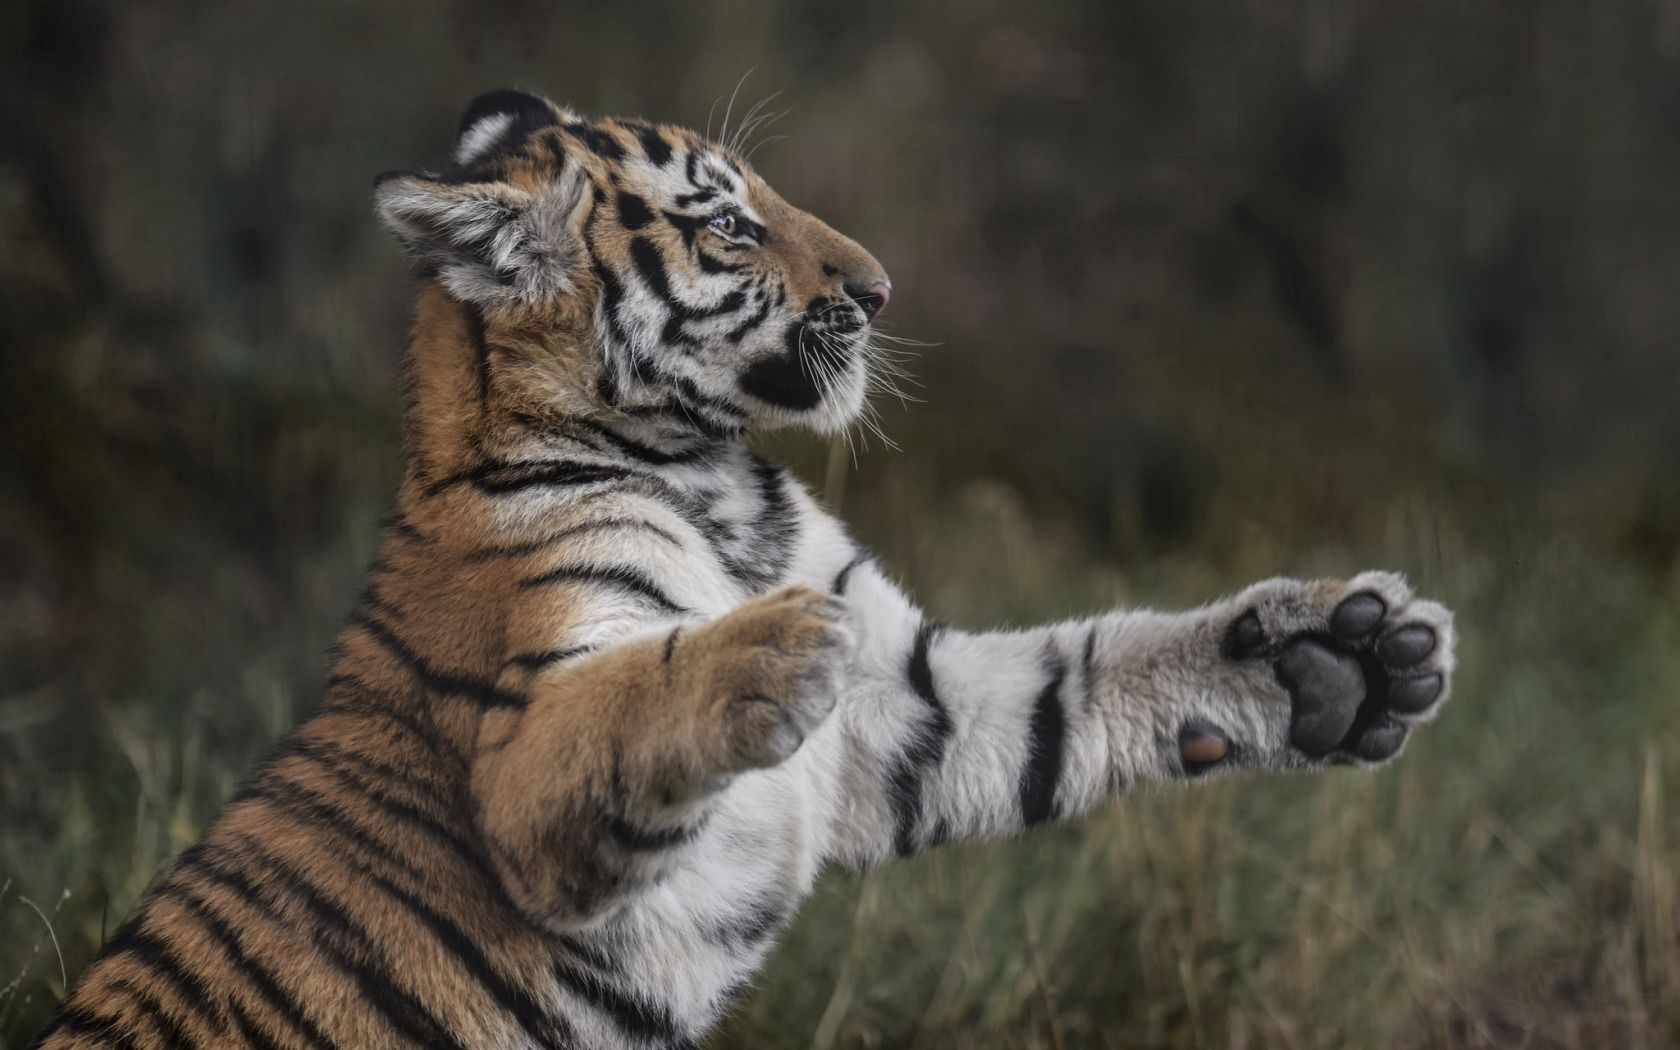 94229 download wallpaper Animals, Tiger, Paws, Grass, Young, Joey, Playful screensavers and pictures for free